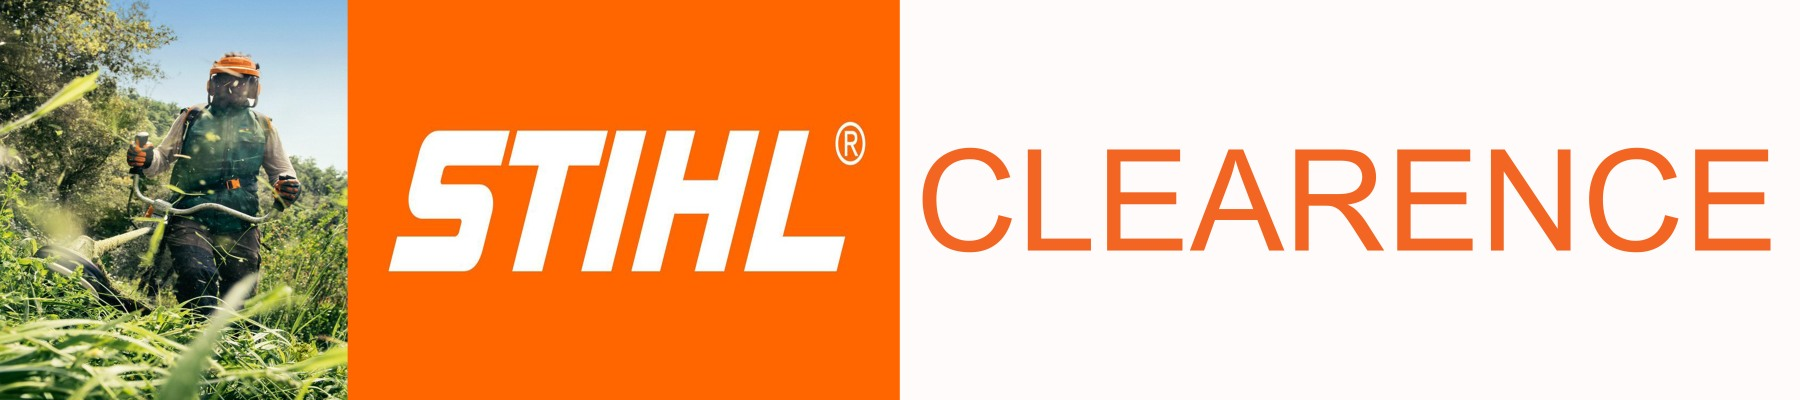 STIHL CLEARENCE